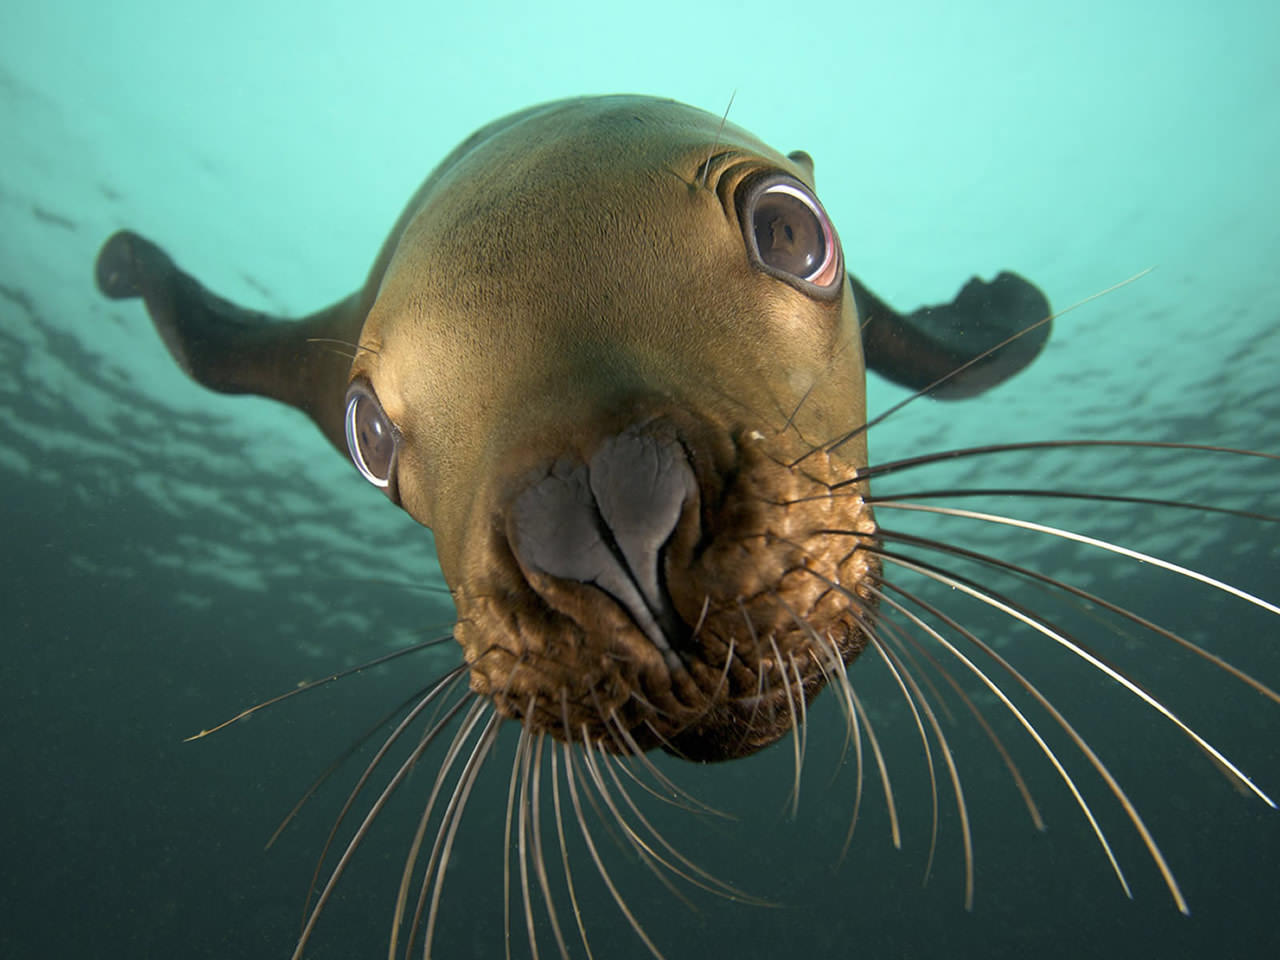 Underwater Seal Wallpaper 1280x960